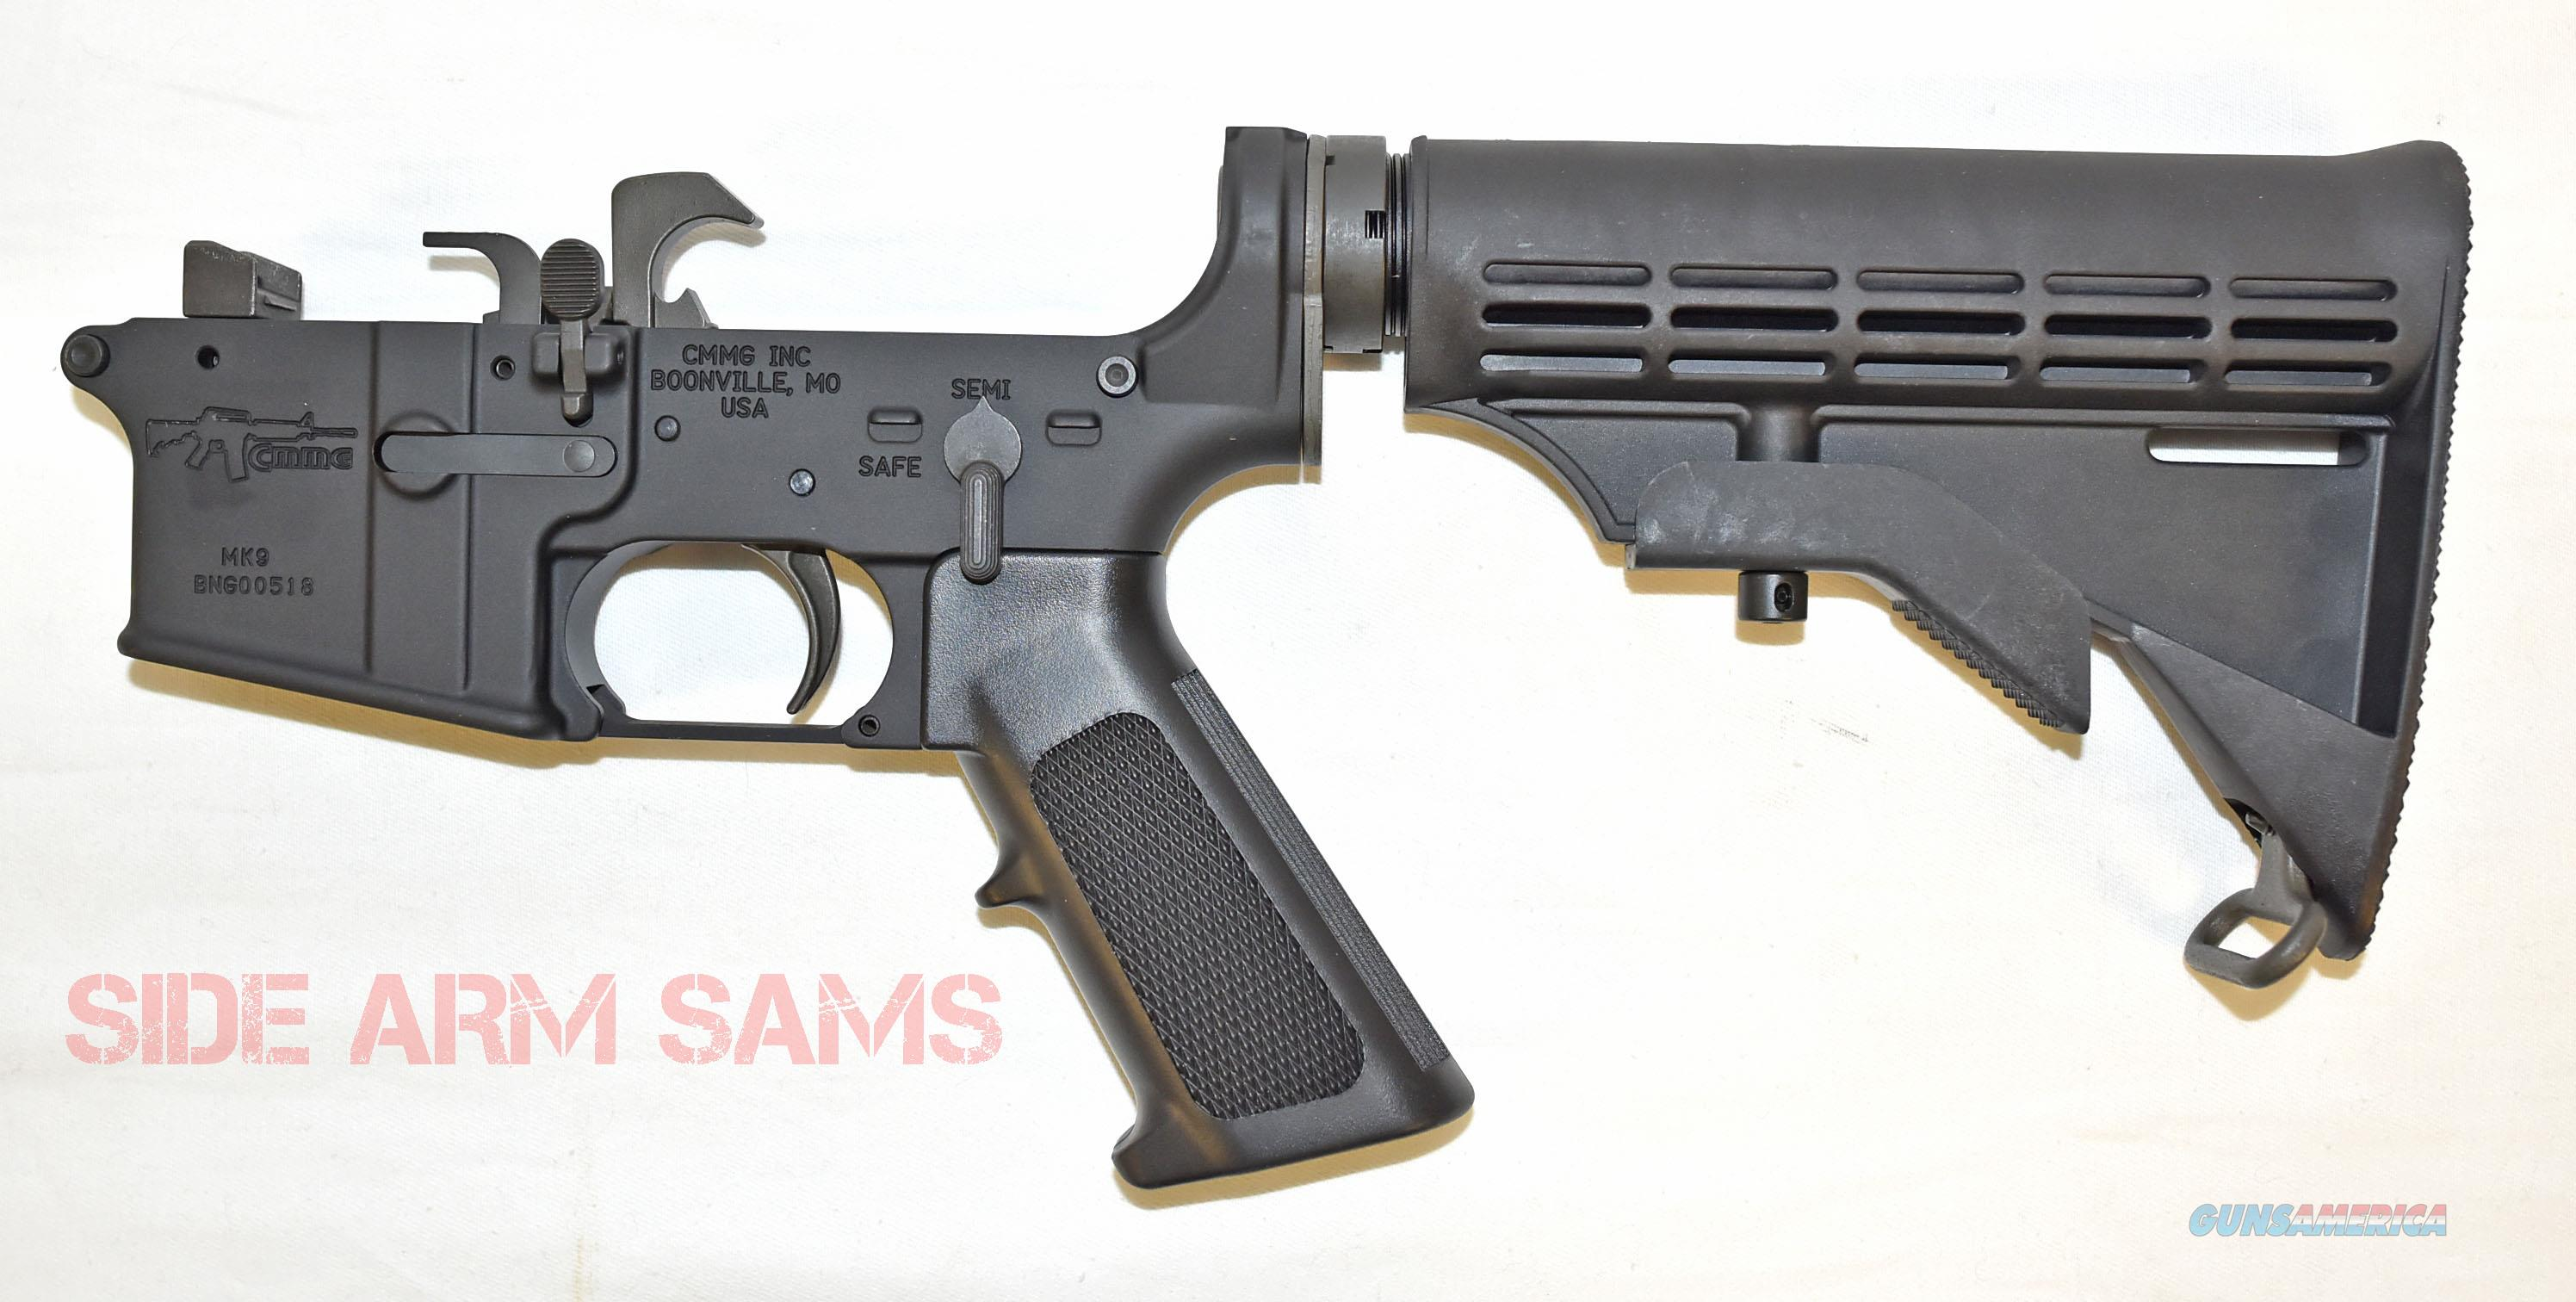 NIB CMMG Mk9 9mm Complete M4 Ambi Lower Receiver  Guns > Rifles > CMMG > CMMG Rifle